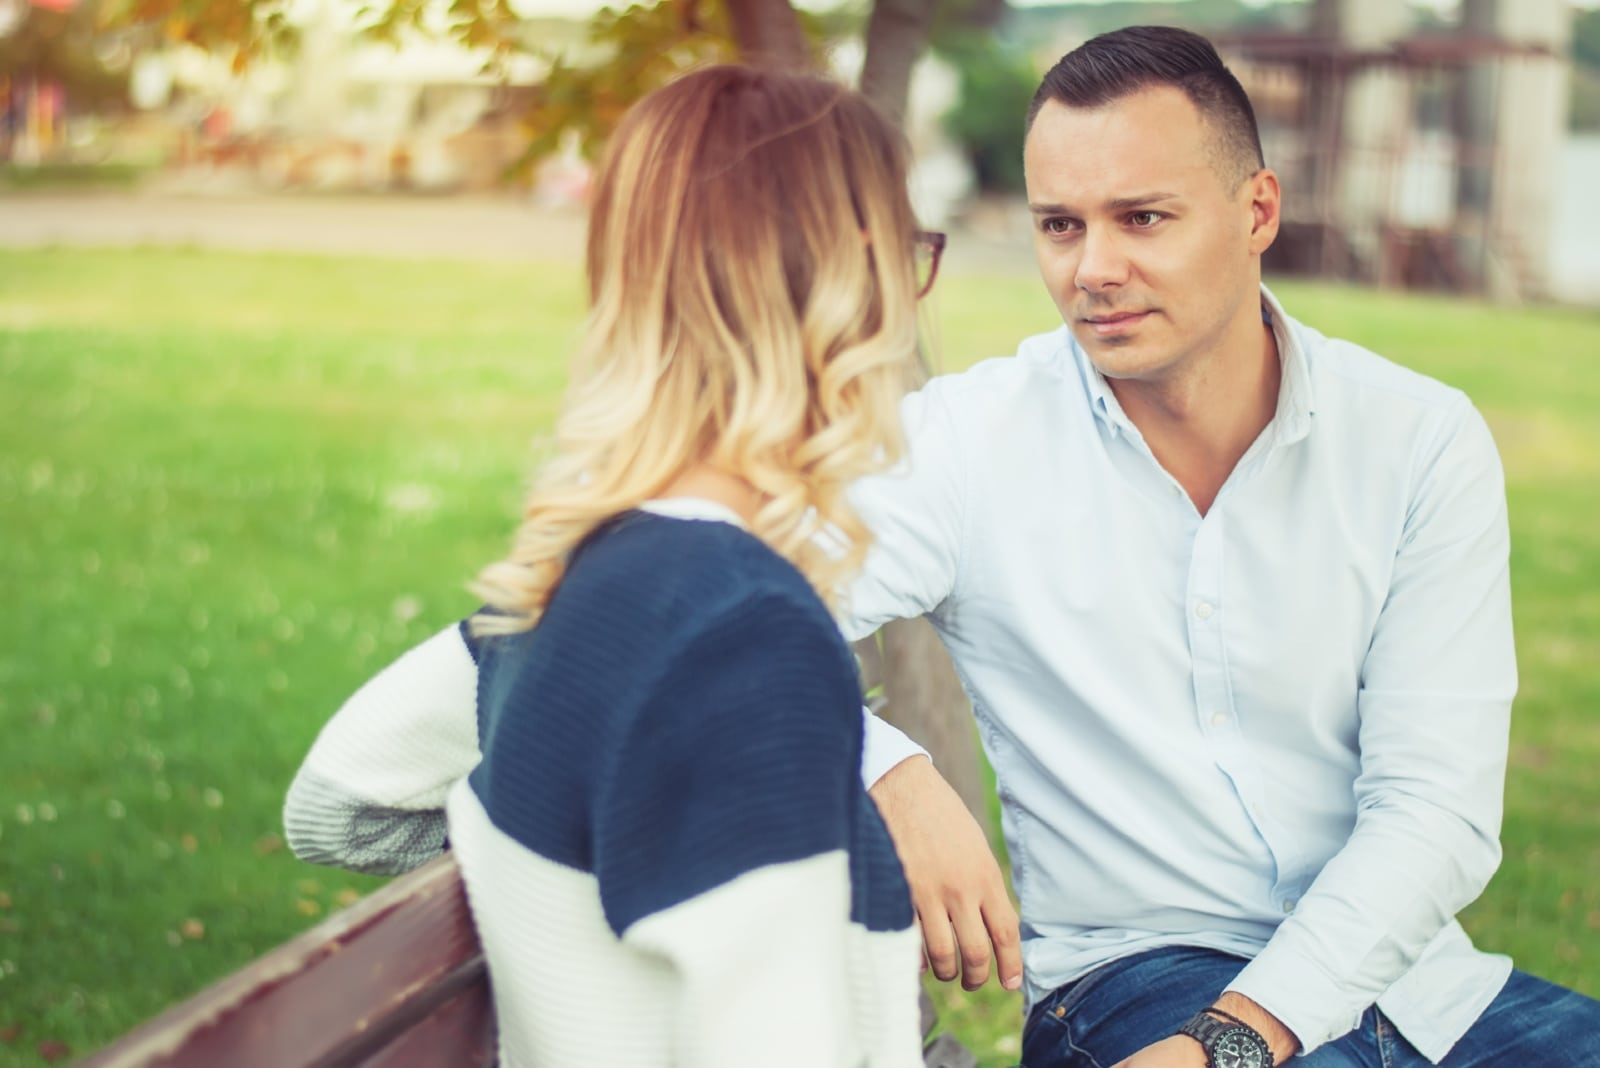 man looking at woman while sitting on bench